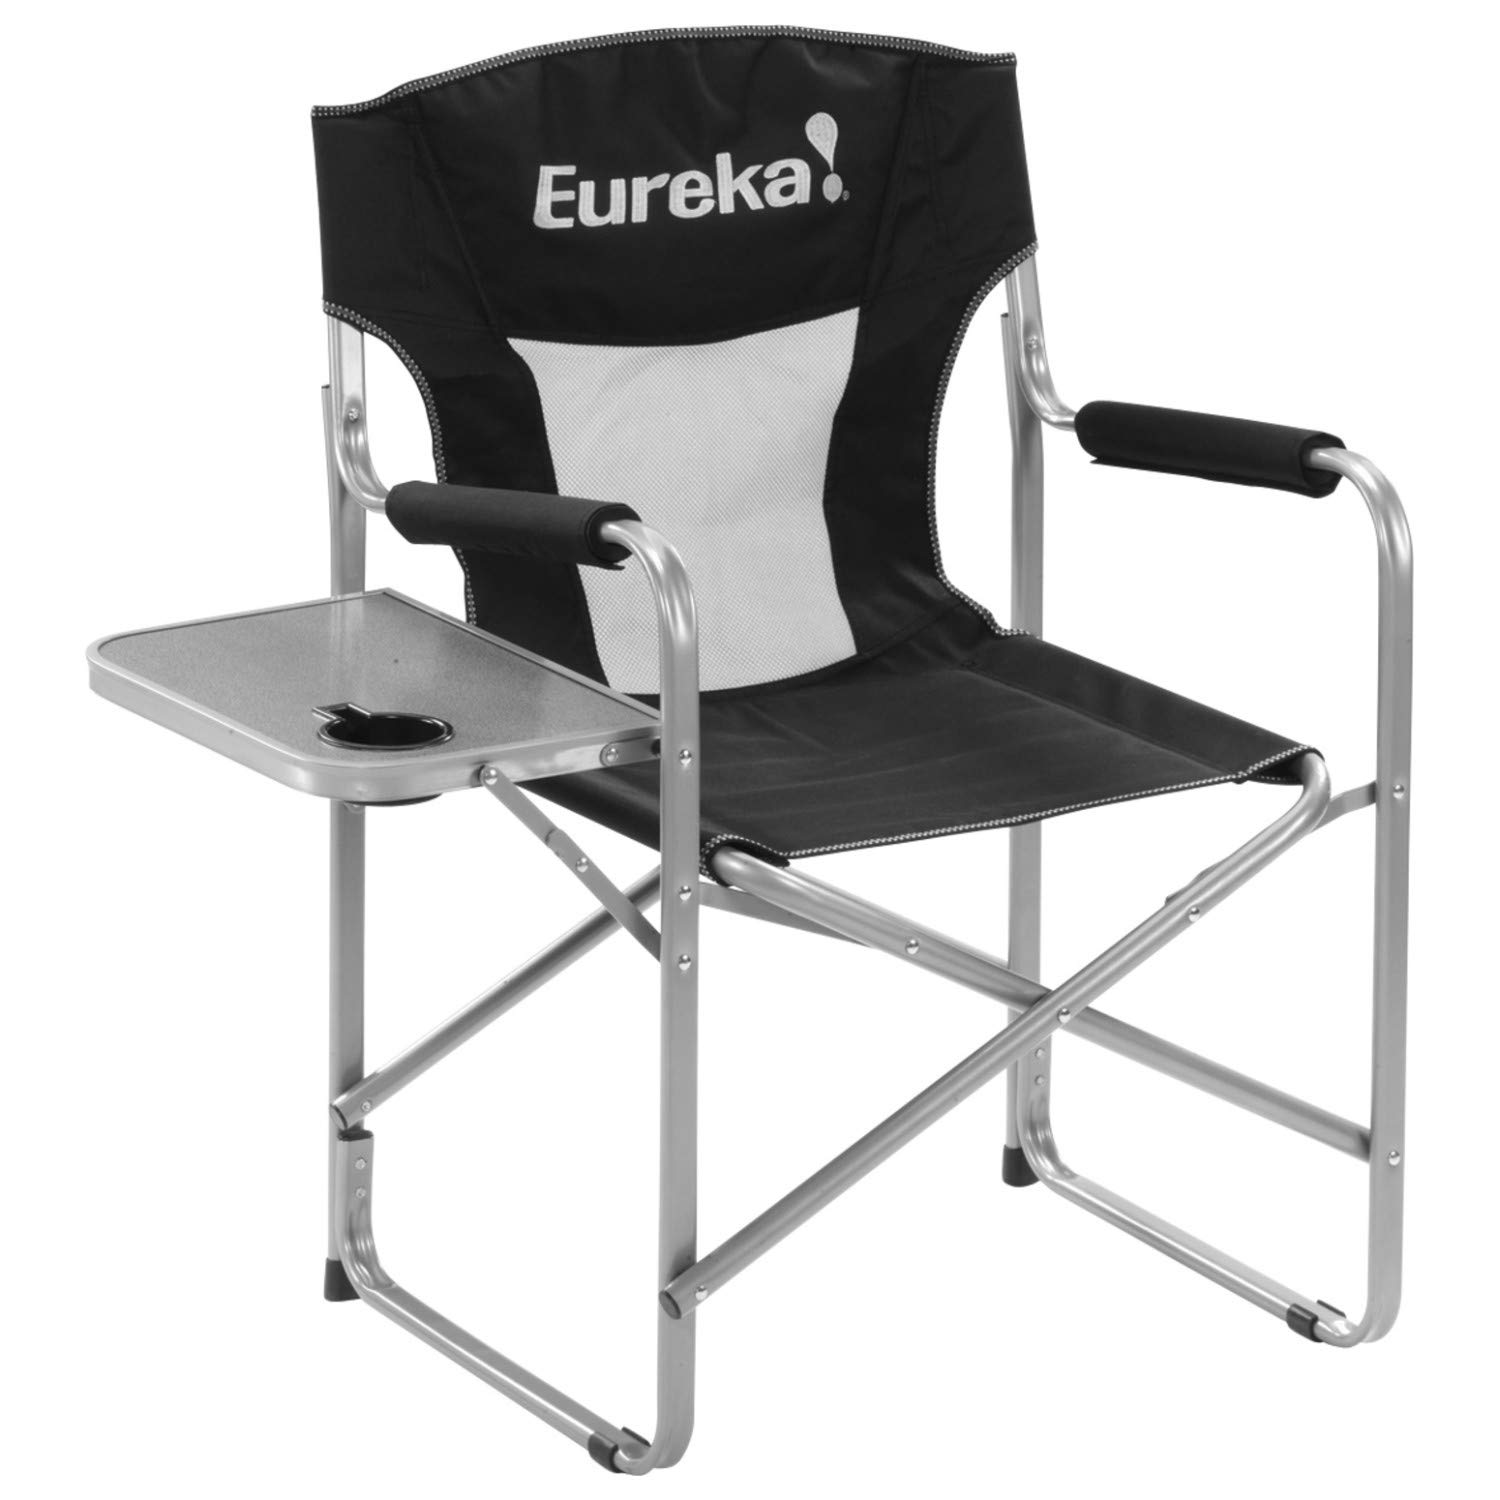 Eureka! Director Chair with Side Table